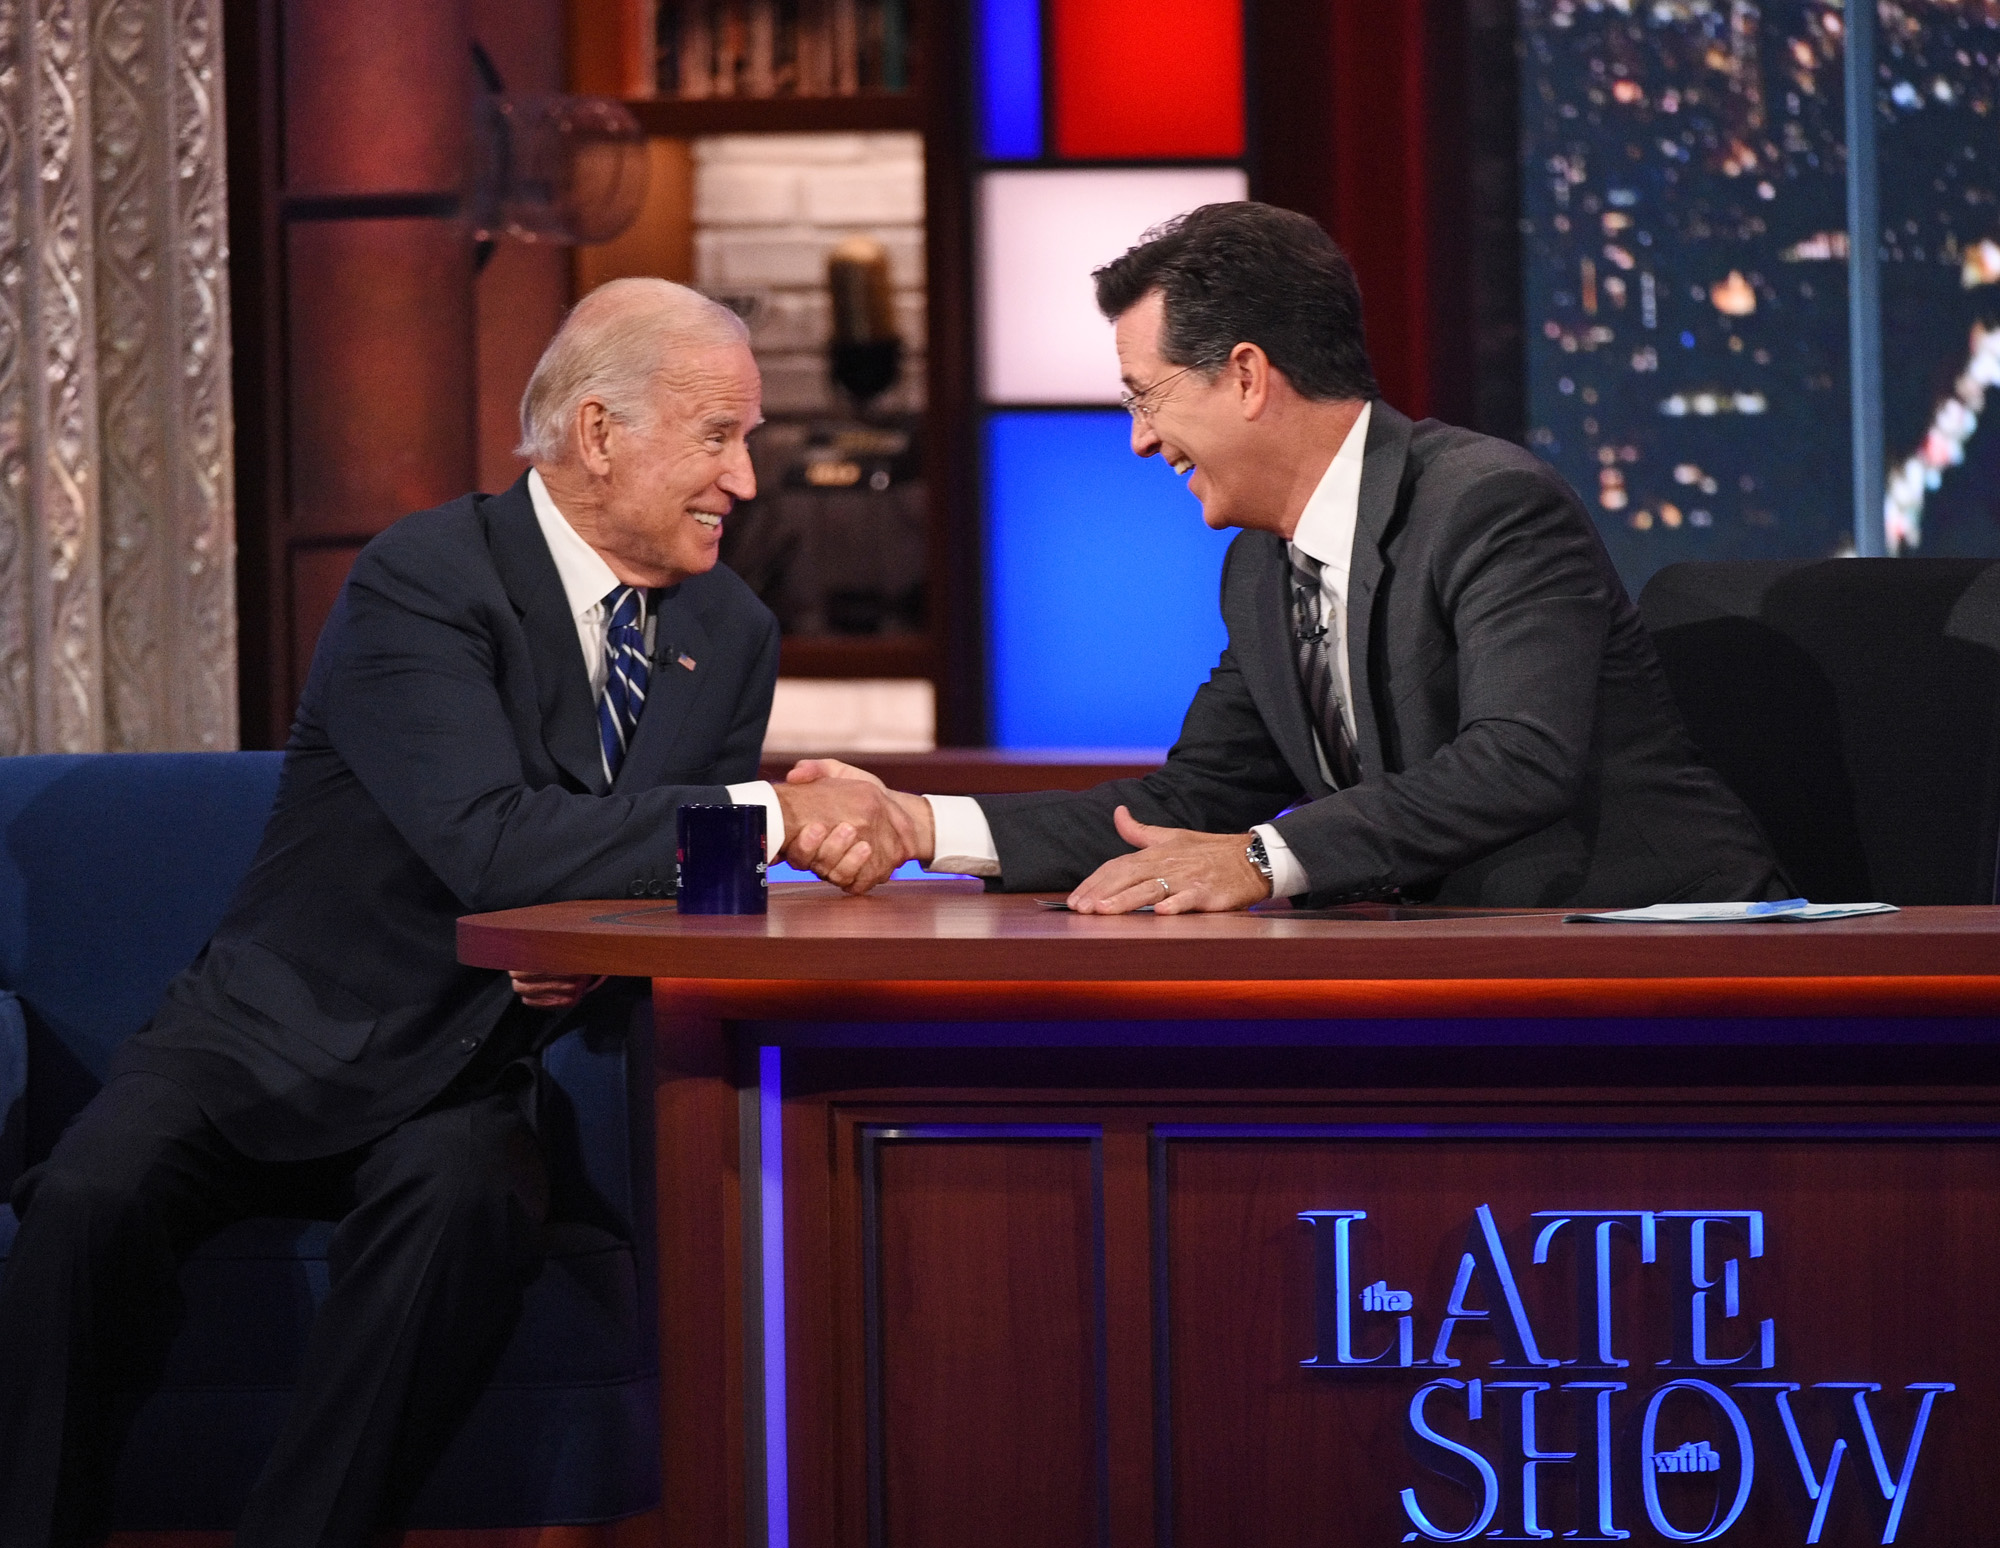 Stephen Colbert talks with Vice President Joe Biden, on The Late Show with Stephen Colbert on Sept 10, 2015.